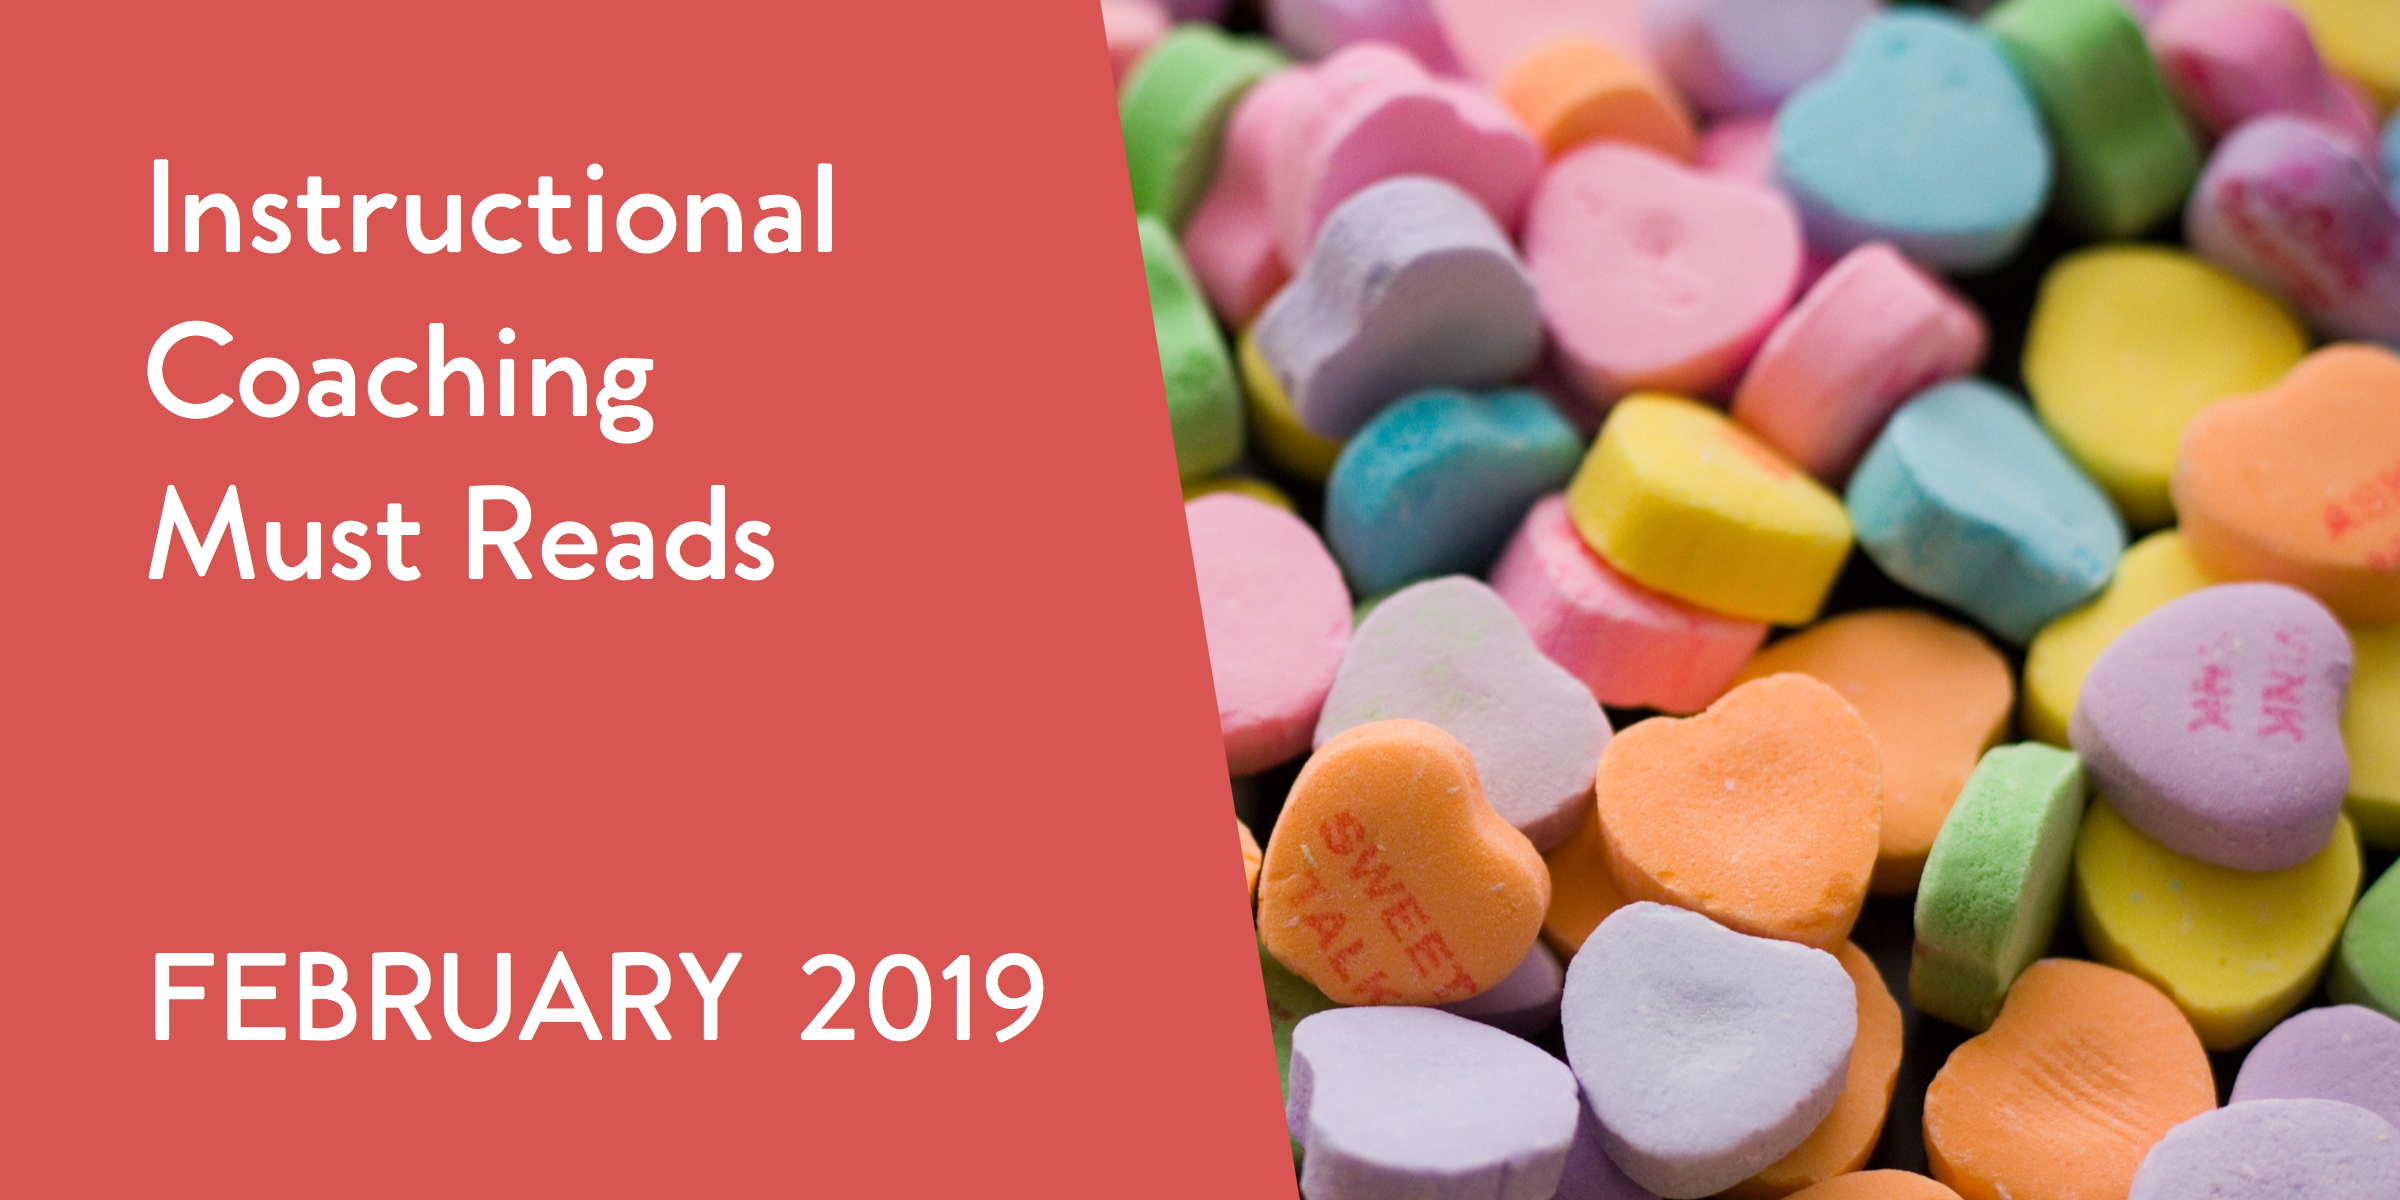 Must reads header - February 2019 (red)